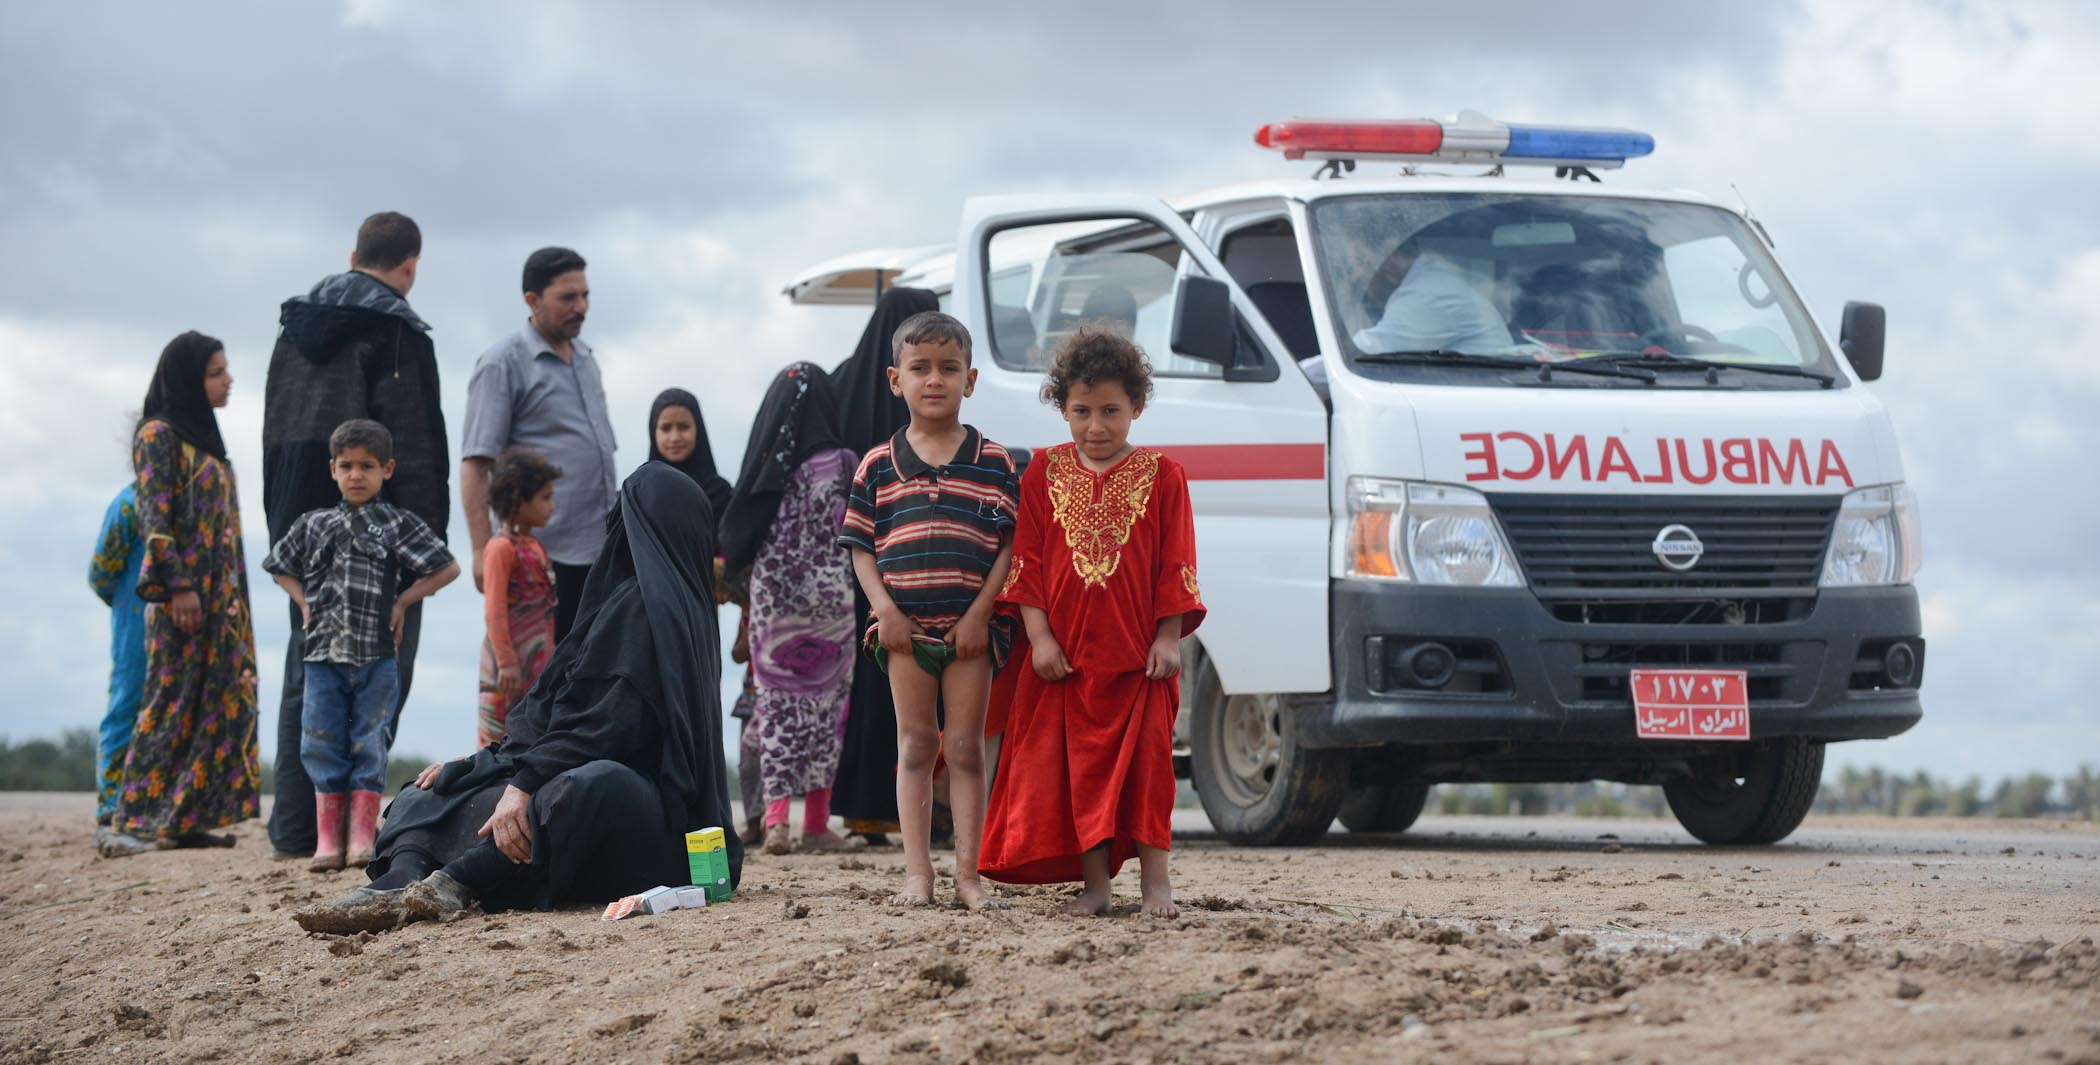 A Brother And Sister Waiting To See Medical Staff On One Of AMAR's Mobile Clinics That Has Just Arrived At Their Remote Village In Southern Iraq